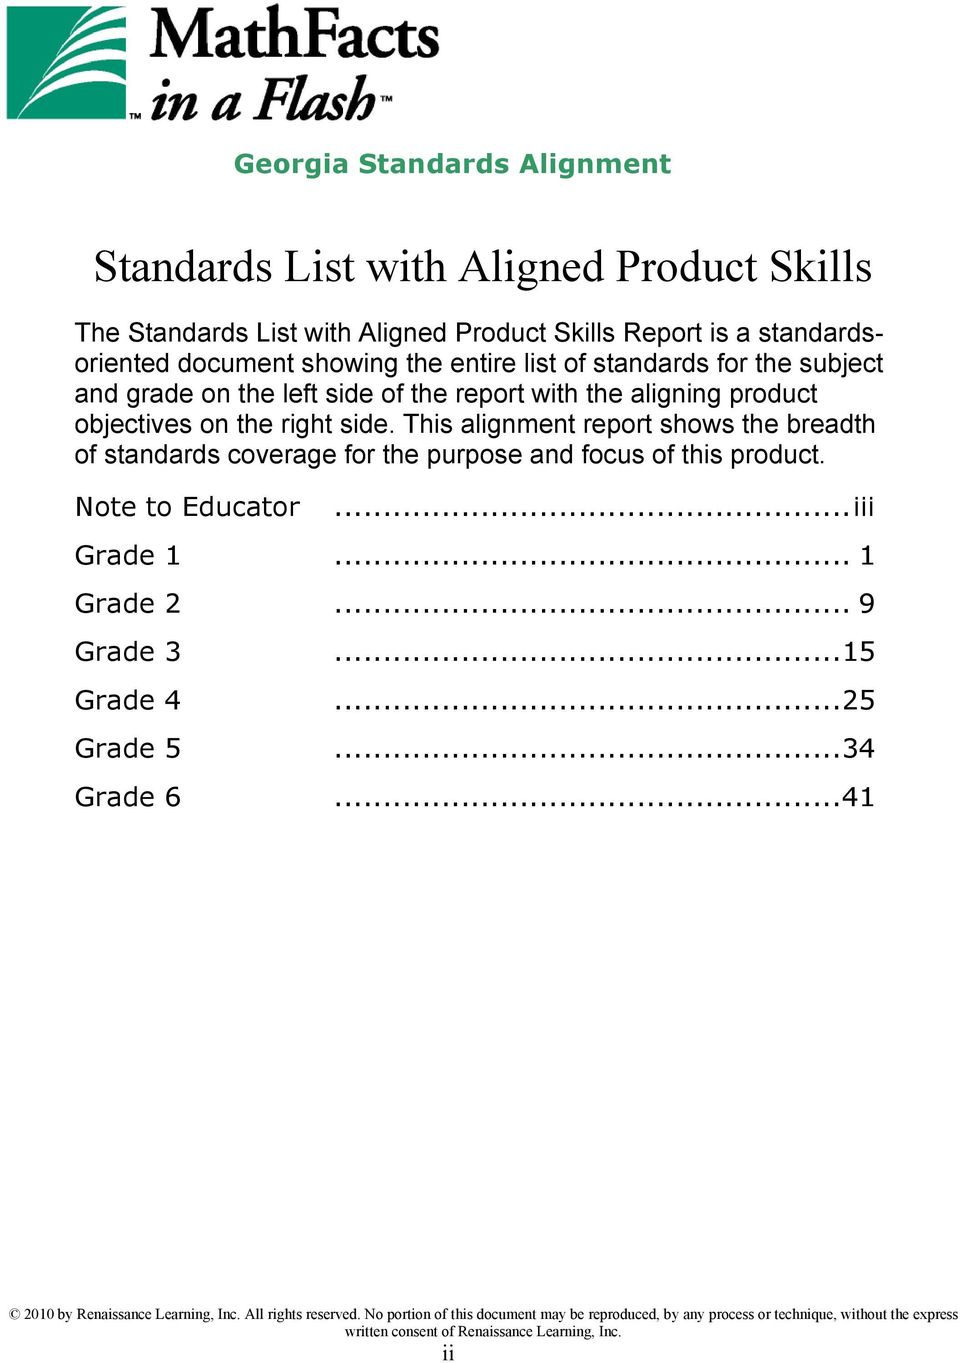 This alignment report shows the breadth of standards coverage for the purpose and focus of this product. Note to Educator...iii Grade 1... 1 Grade 2.